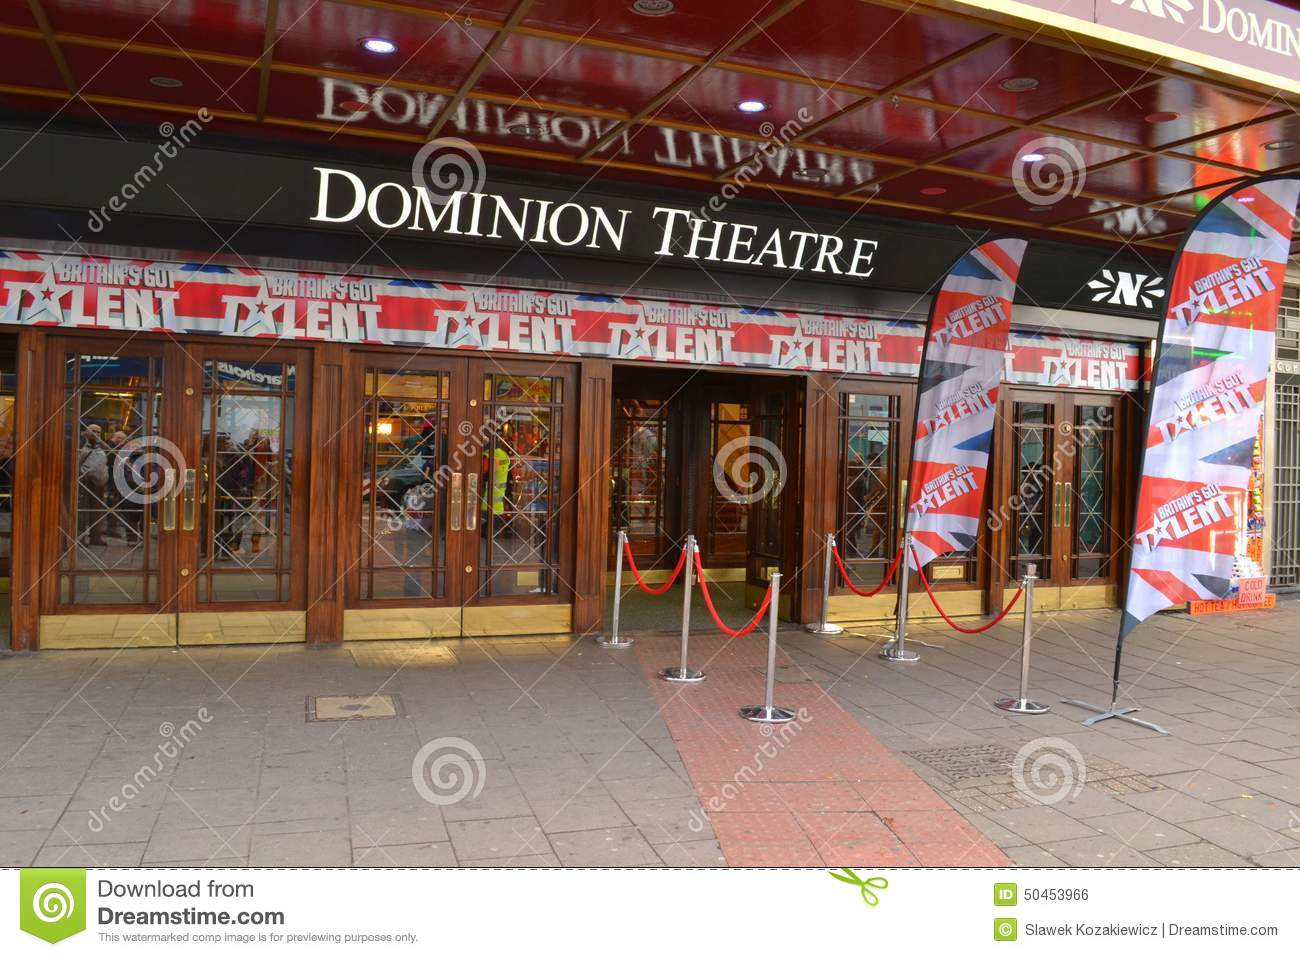 Dominion Theatre Britains Got Talent